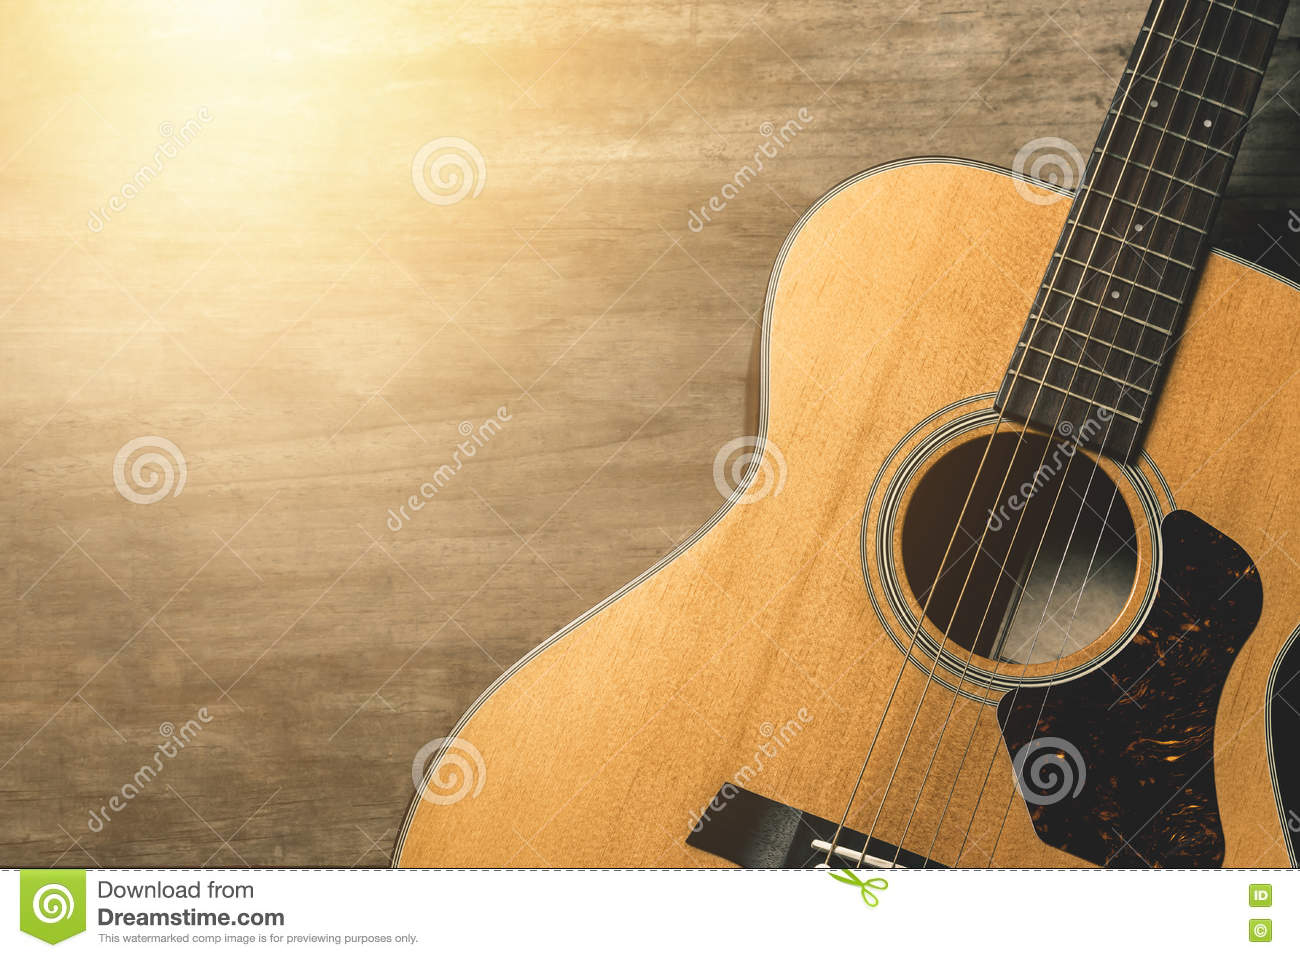 Acoustic guitar stock photo  Image of sound, effect, modern - 76919528